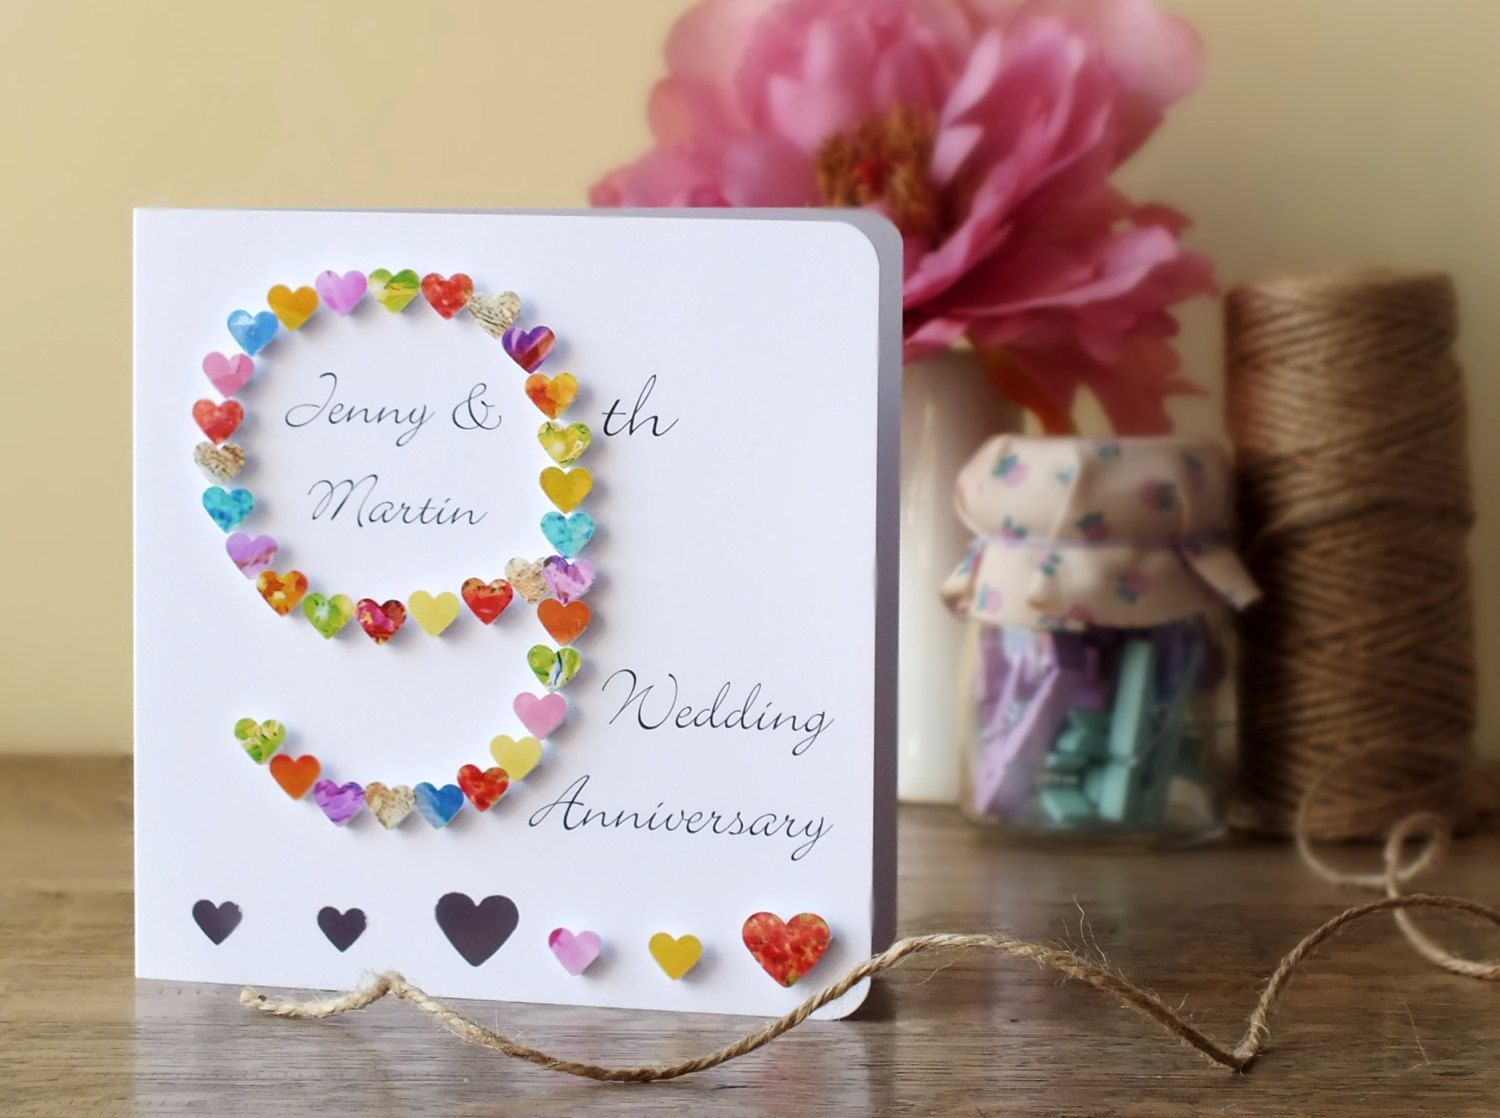 9th Wedding Anniversary Card, Handmade and Personalised